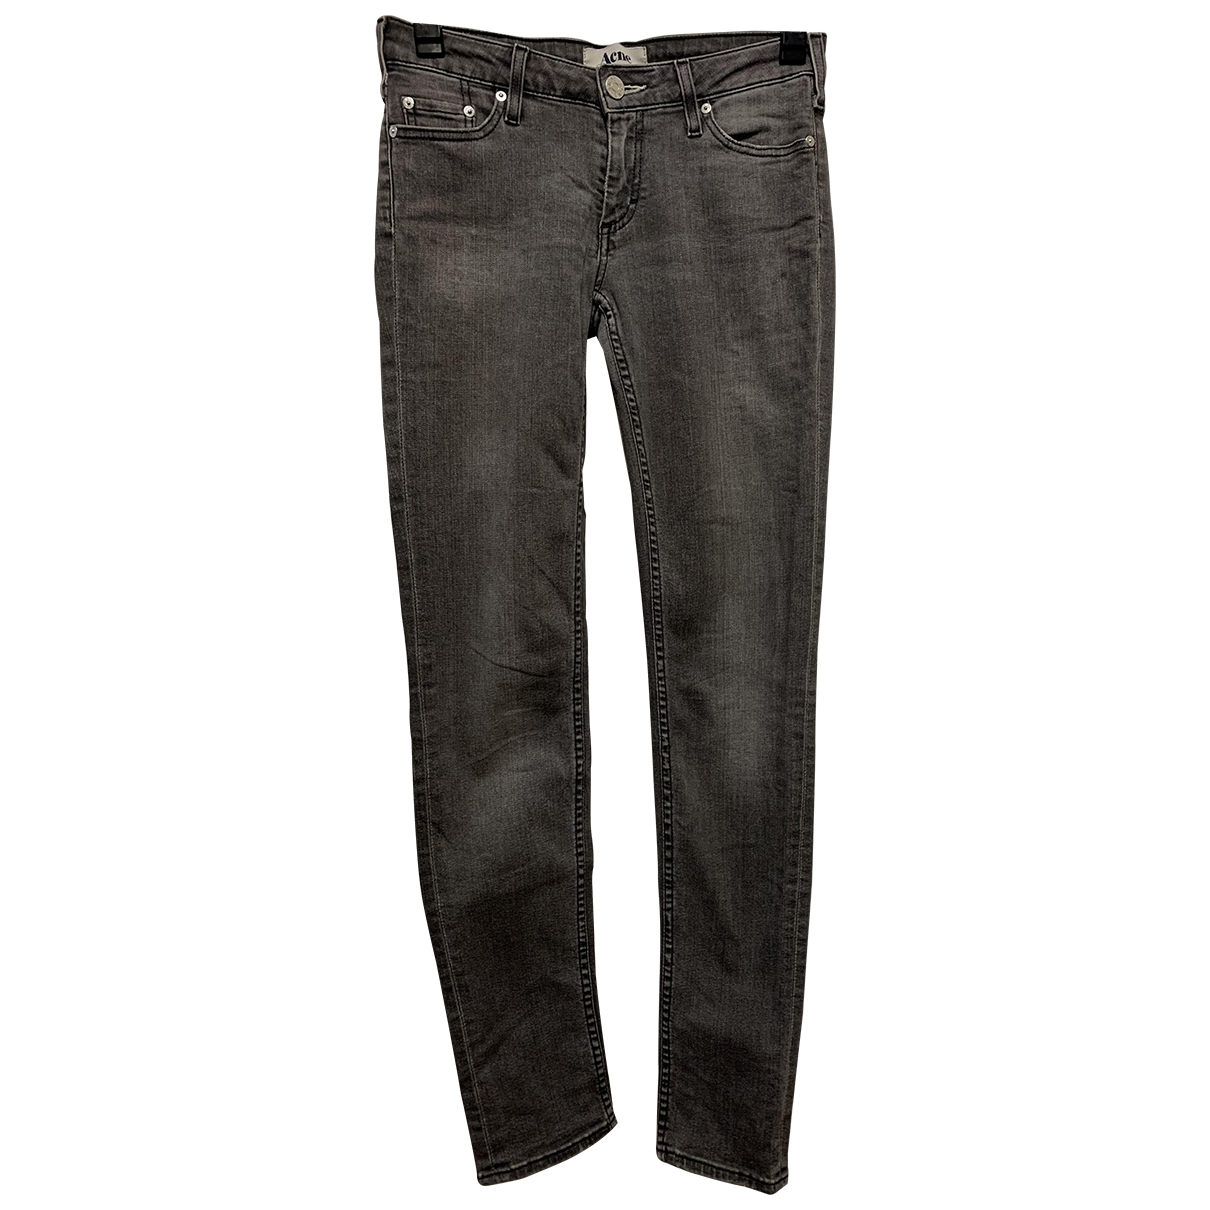 Acne Studios \N Anthracite Cotton - elasthane Jeans for Women 26 US